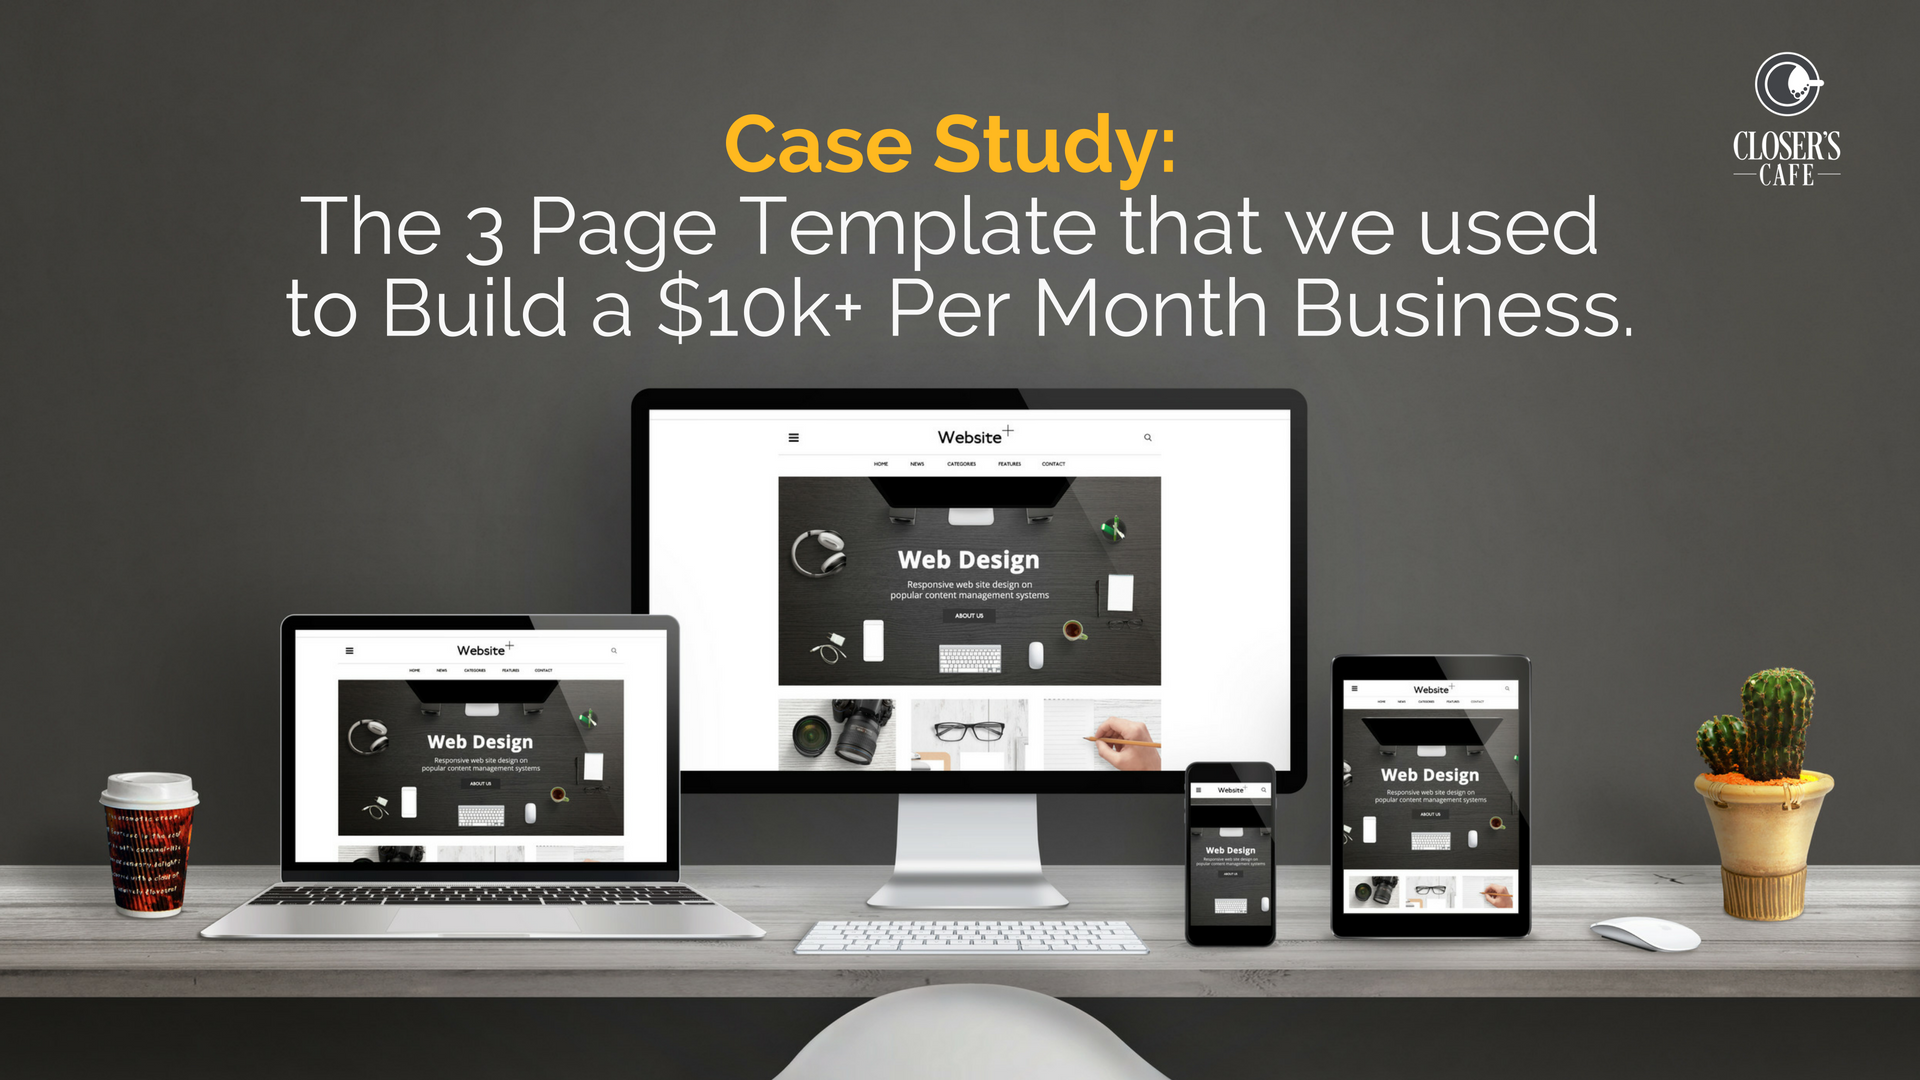 Case Study: The 3 Page Template that we used to Build a $10k+ Per Month Business.